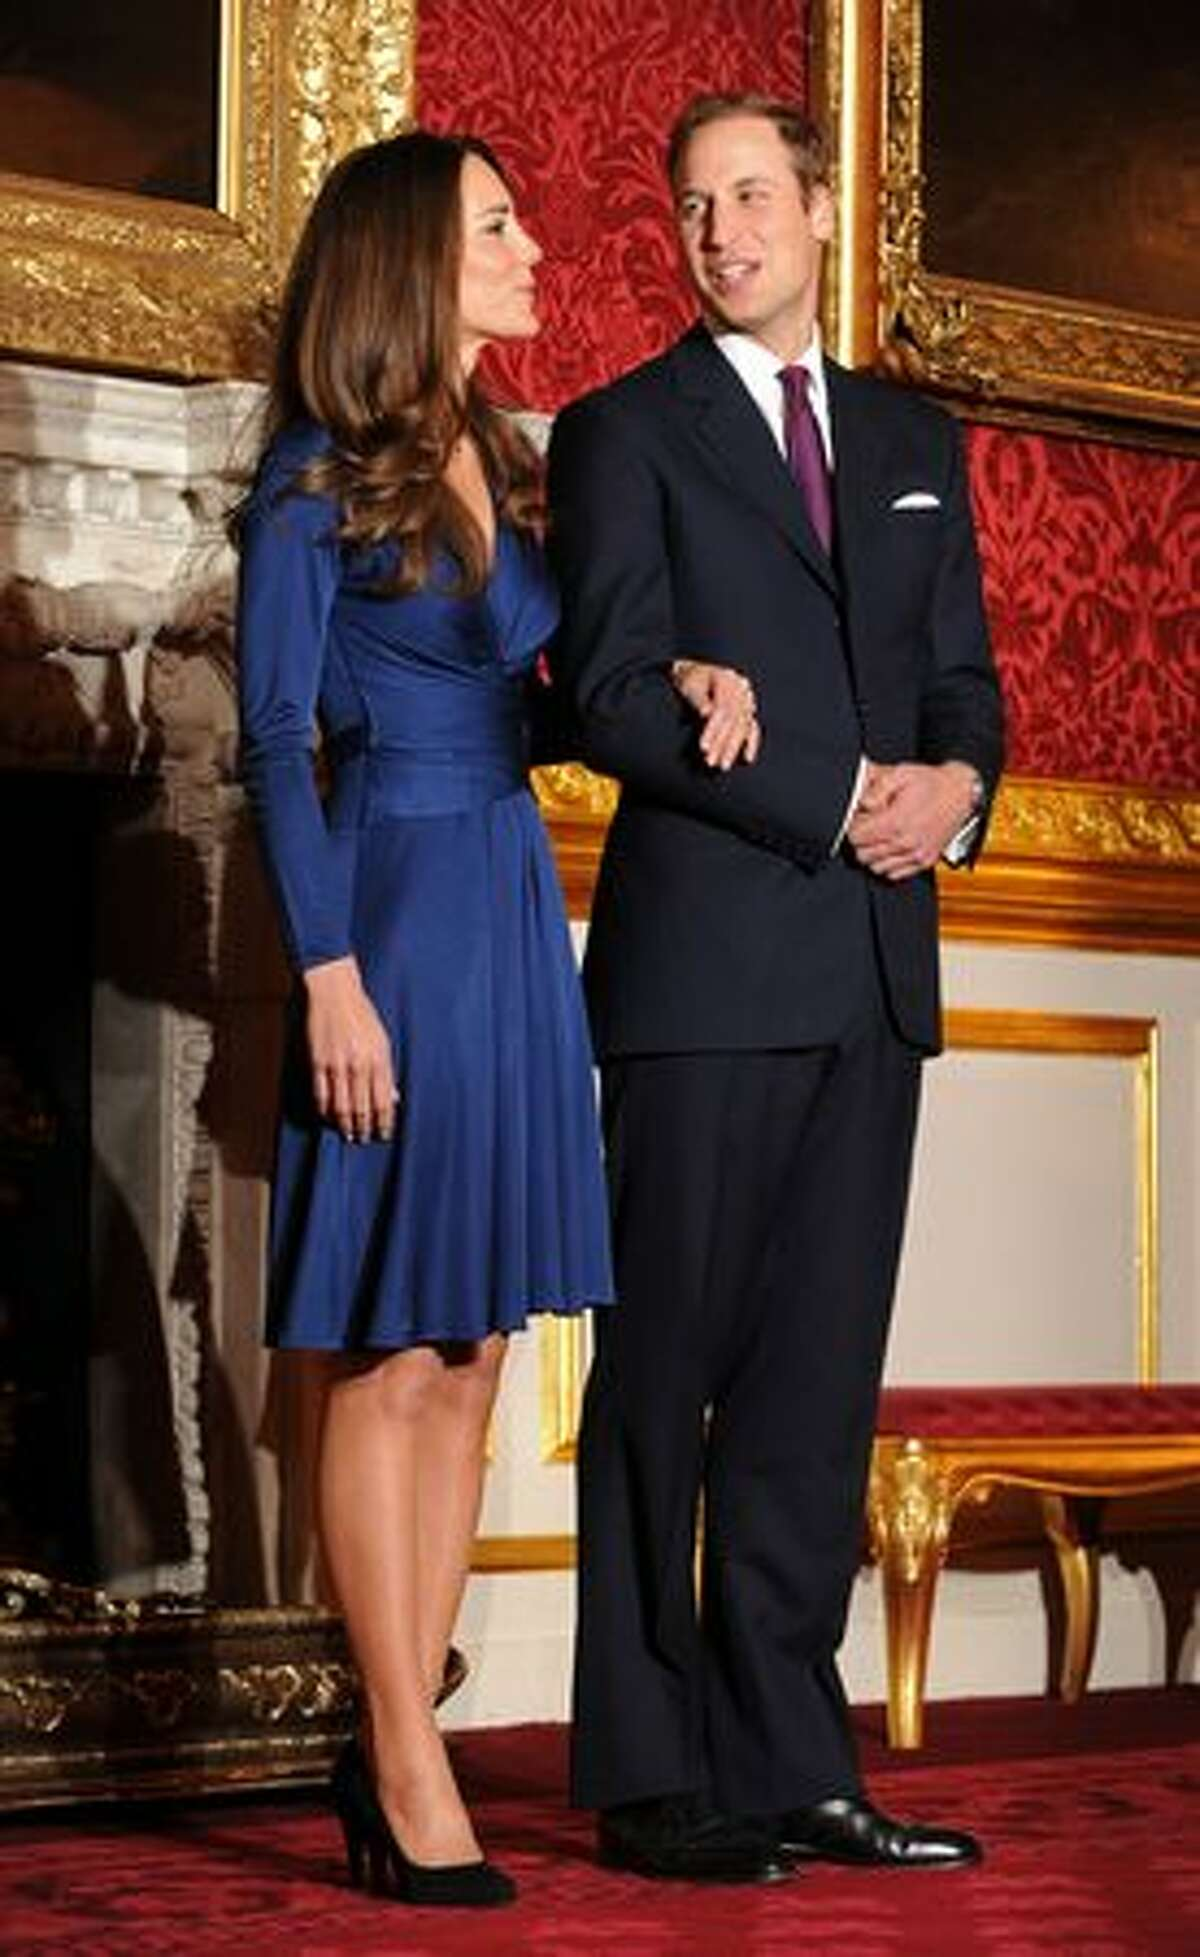 Britain's Prince William and his fiancée Kate Middleton pose for photographers during a photocall to mark their engagement.